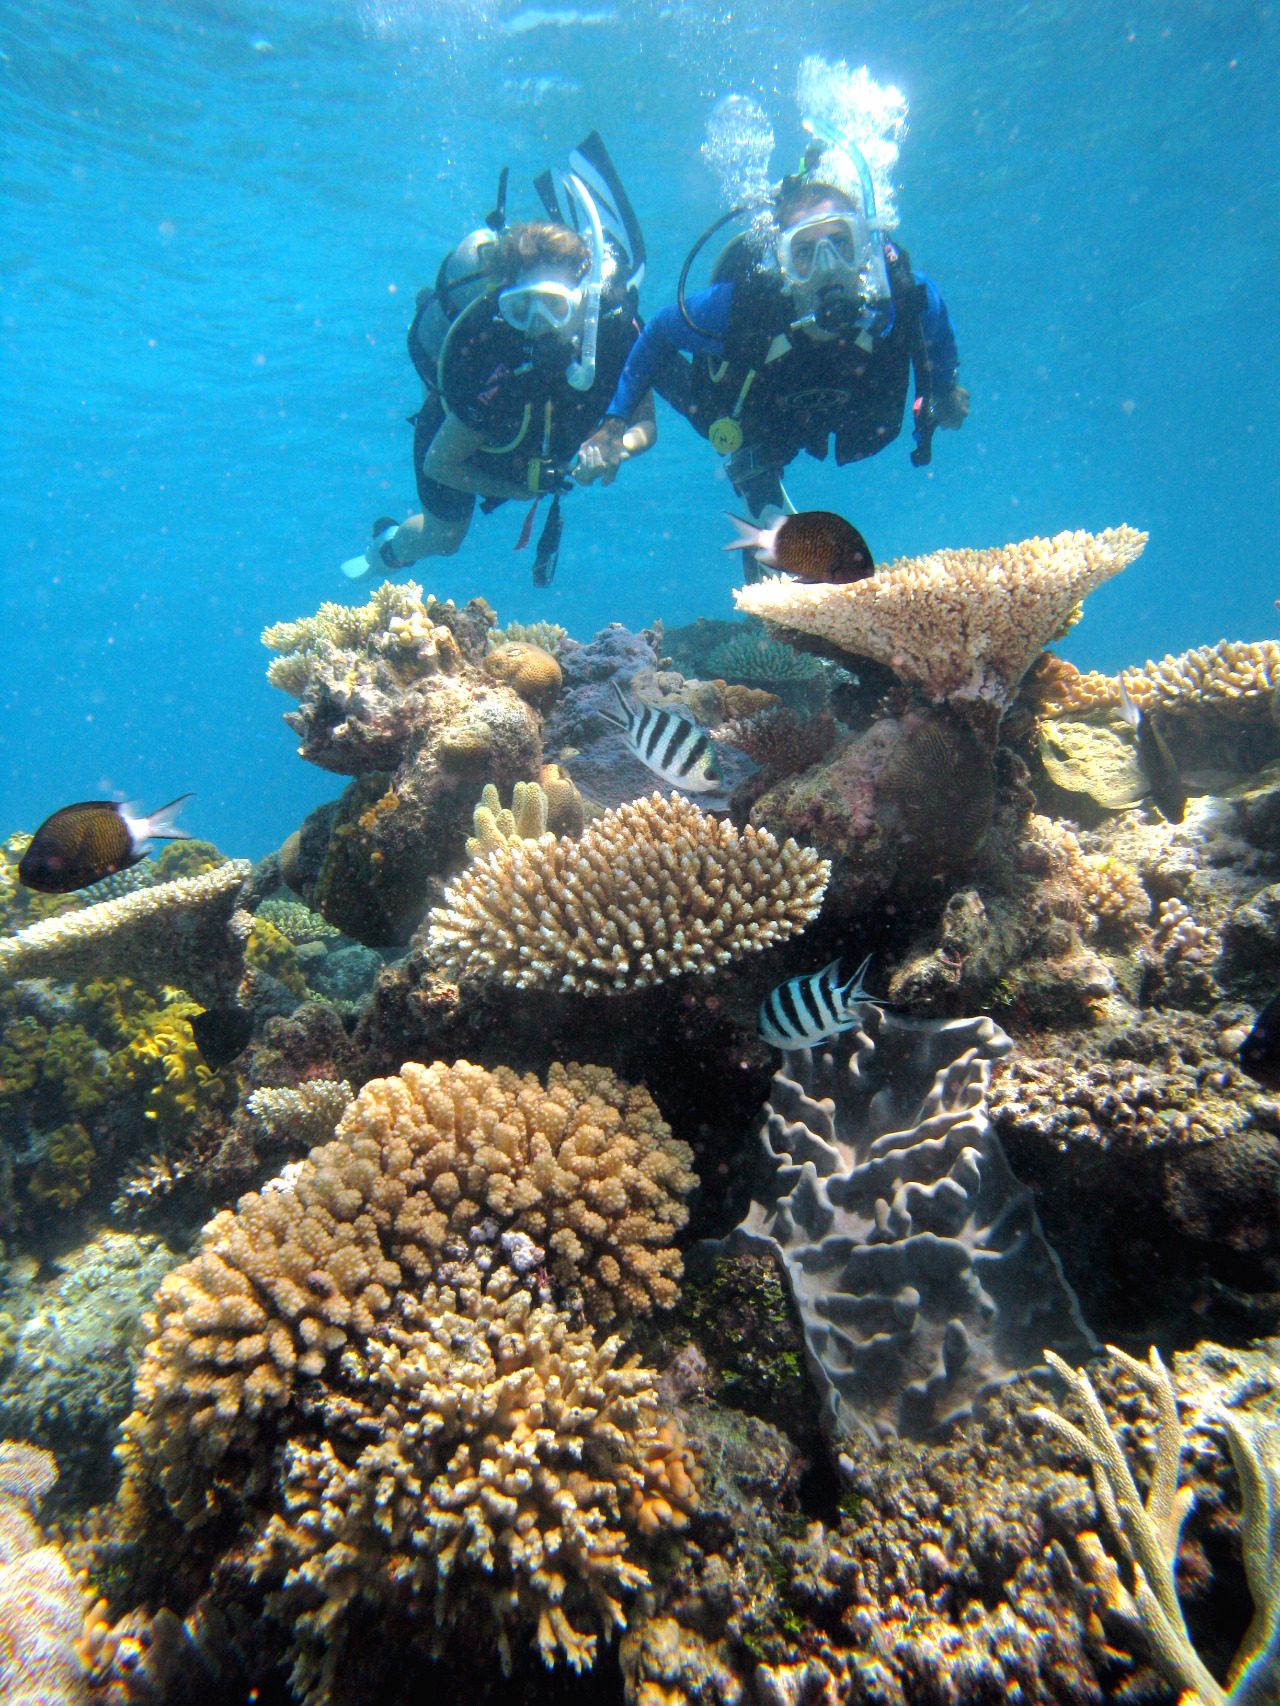 Cairns attractions great barrier reef tours dive snorkel - Dive great barrier reef ...